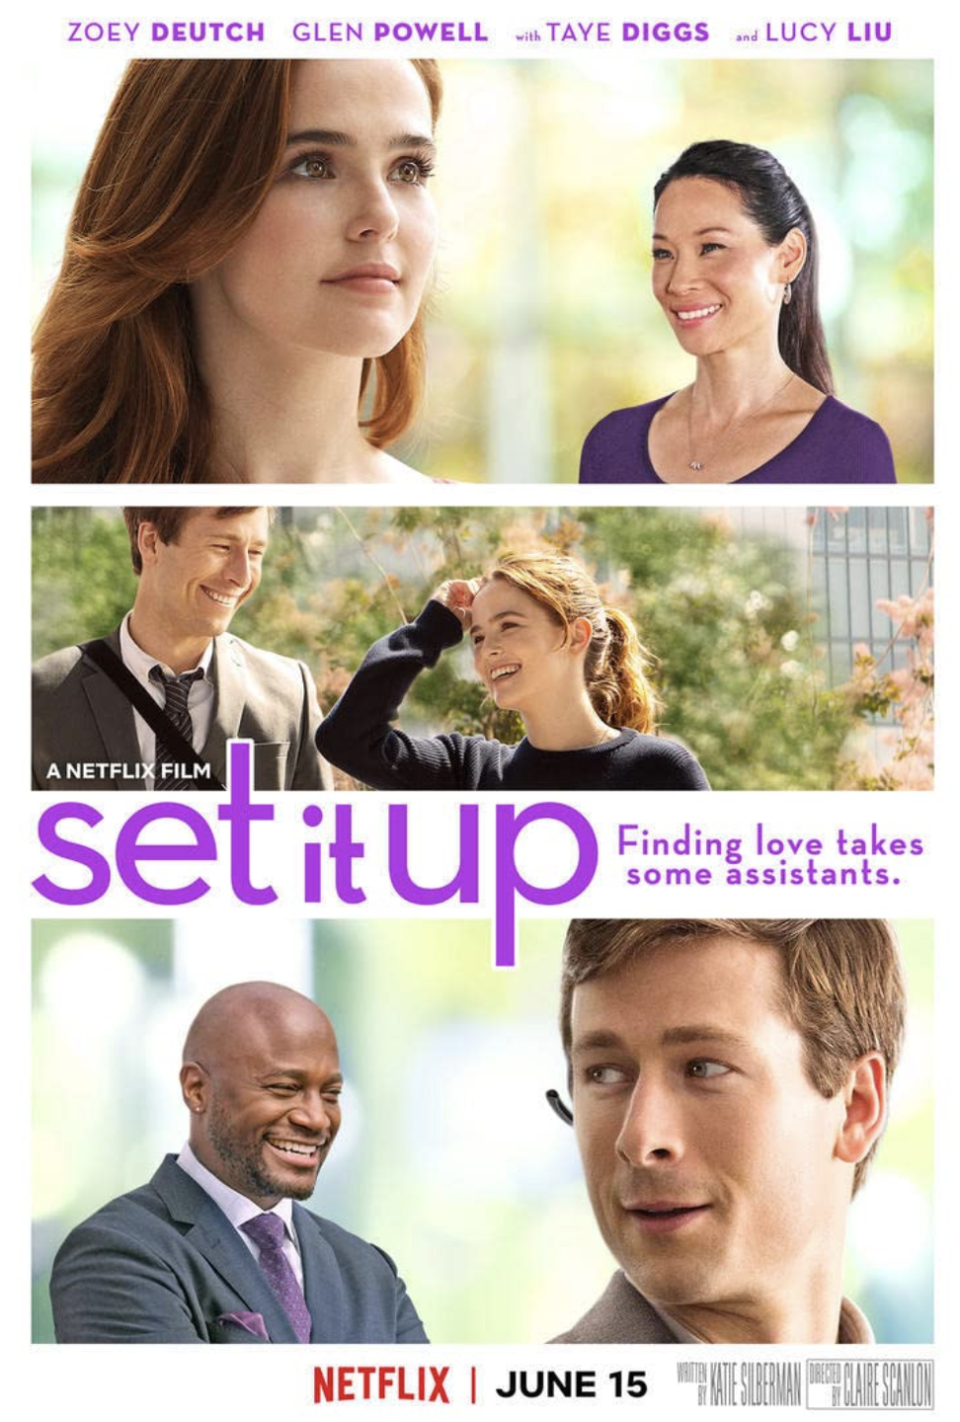 "<p>Two assistants decide to set their bosses up so that they won't always be at the office — but the real love connection is between the two matchmakers. </p><p><a class=""link rapid-noclick-resp"" href=""https://www.netflix.com/search?q=Set+It+Up&jbv=80184100"" rel=""nofollow noopener"" target=""_blank"" data-ylk=""slk:STREAM NOW"">STREAM NOW</a></p>"